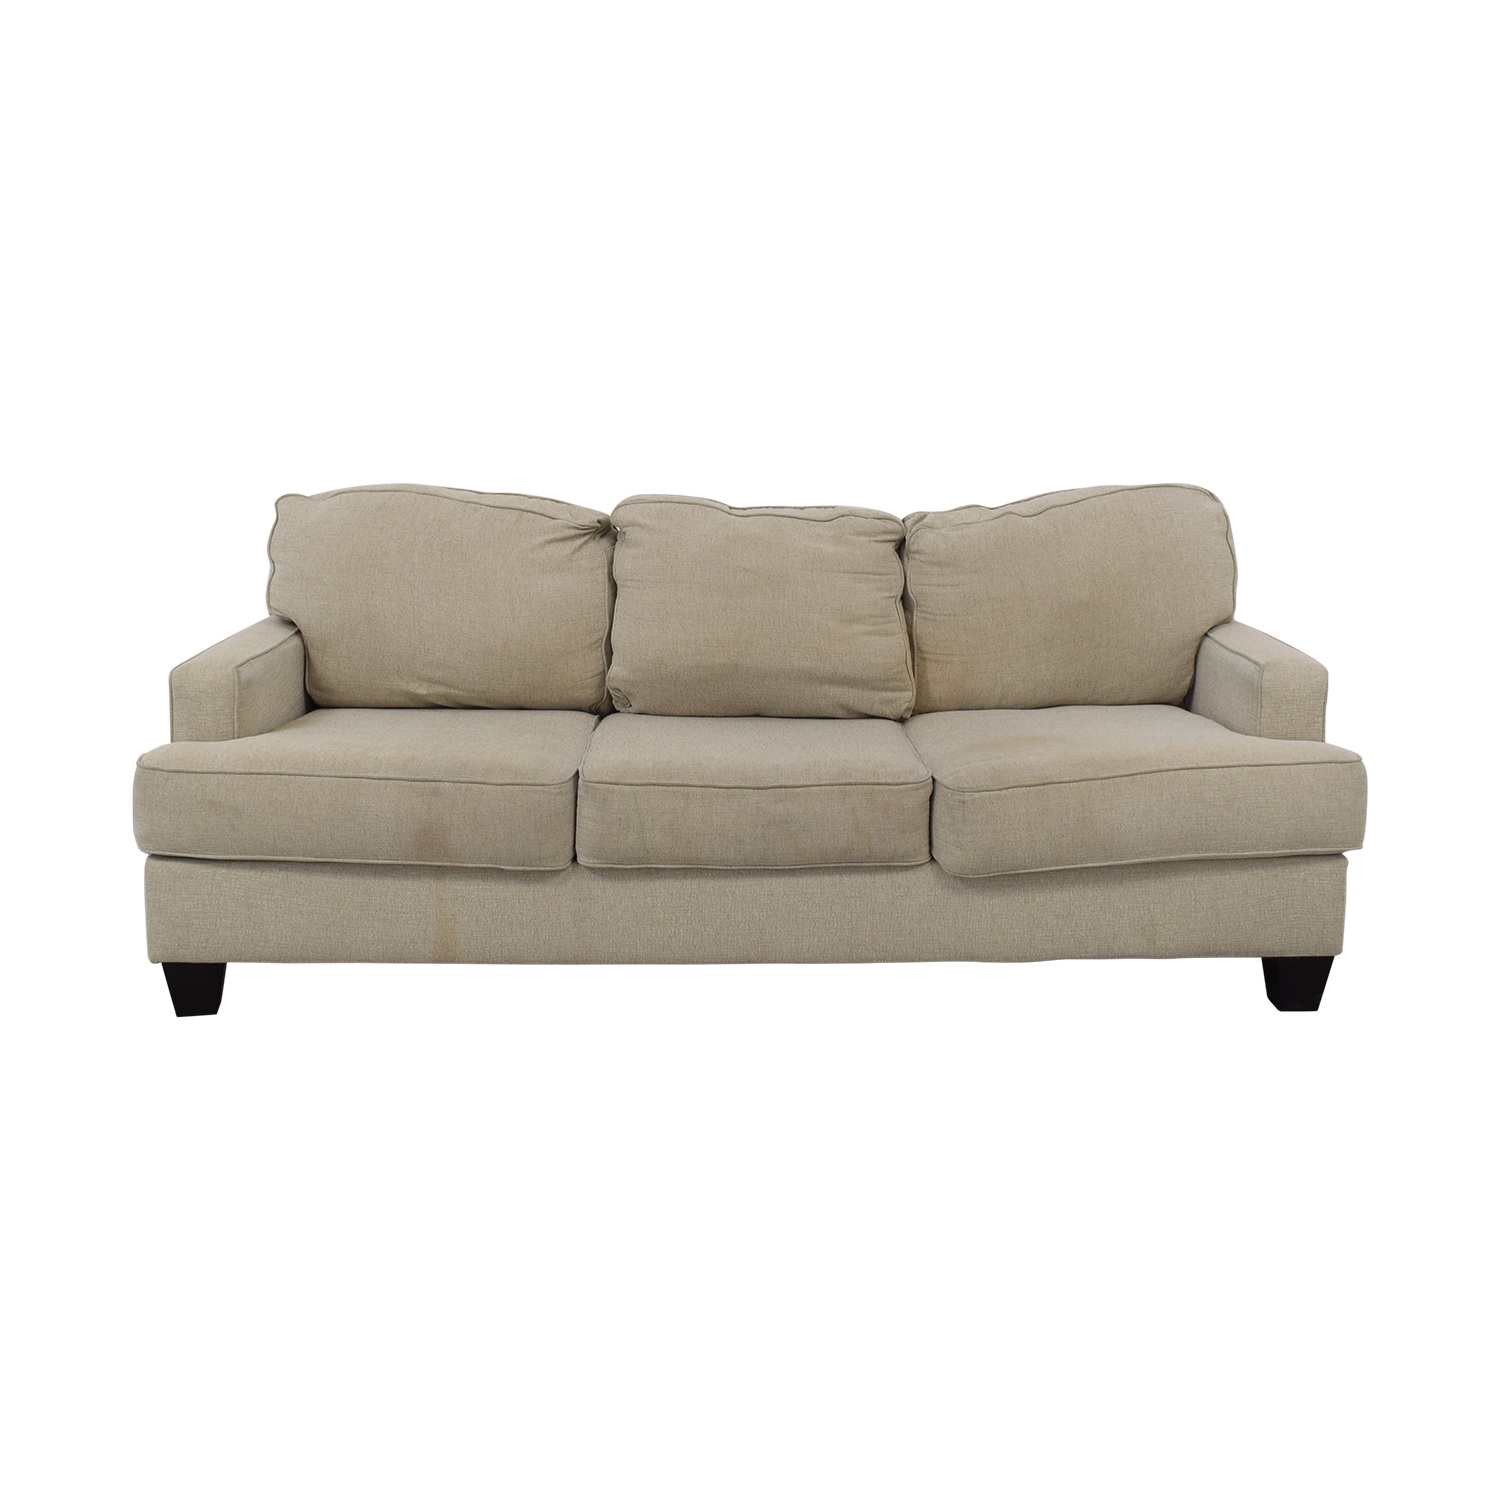 Ashley Furniture Ashley Furniture Sofa nj